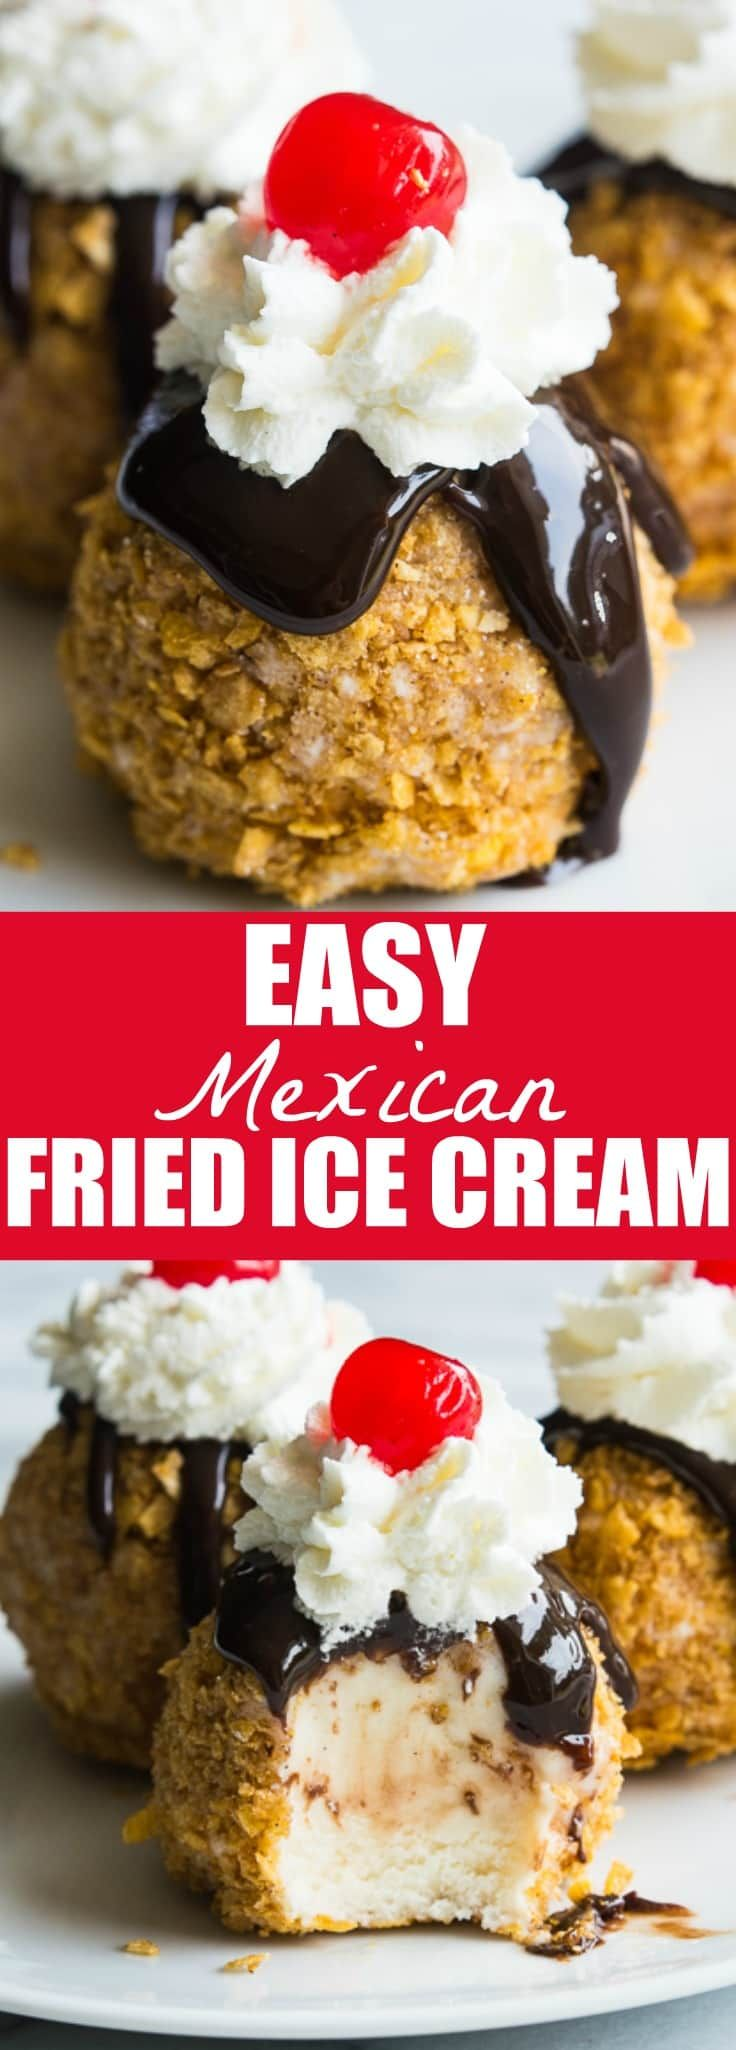 An easy to make Mexican Fried Ice Cream. All the flavors of the classic without the actual frying!! Perfect individual desserts for summer!  PIN IT FOR LATER! Easy Mexican Fried Ice Cream. It's a thing. And yes, it involves actually frying ice cream. Because, people love to fry things. Have you ever been to a fair? They fry sticks of butter there these days. And while that sounds like a heart attack waiting to happen, fried ice cream is wonderful! However, this easy mexican fried…